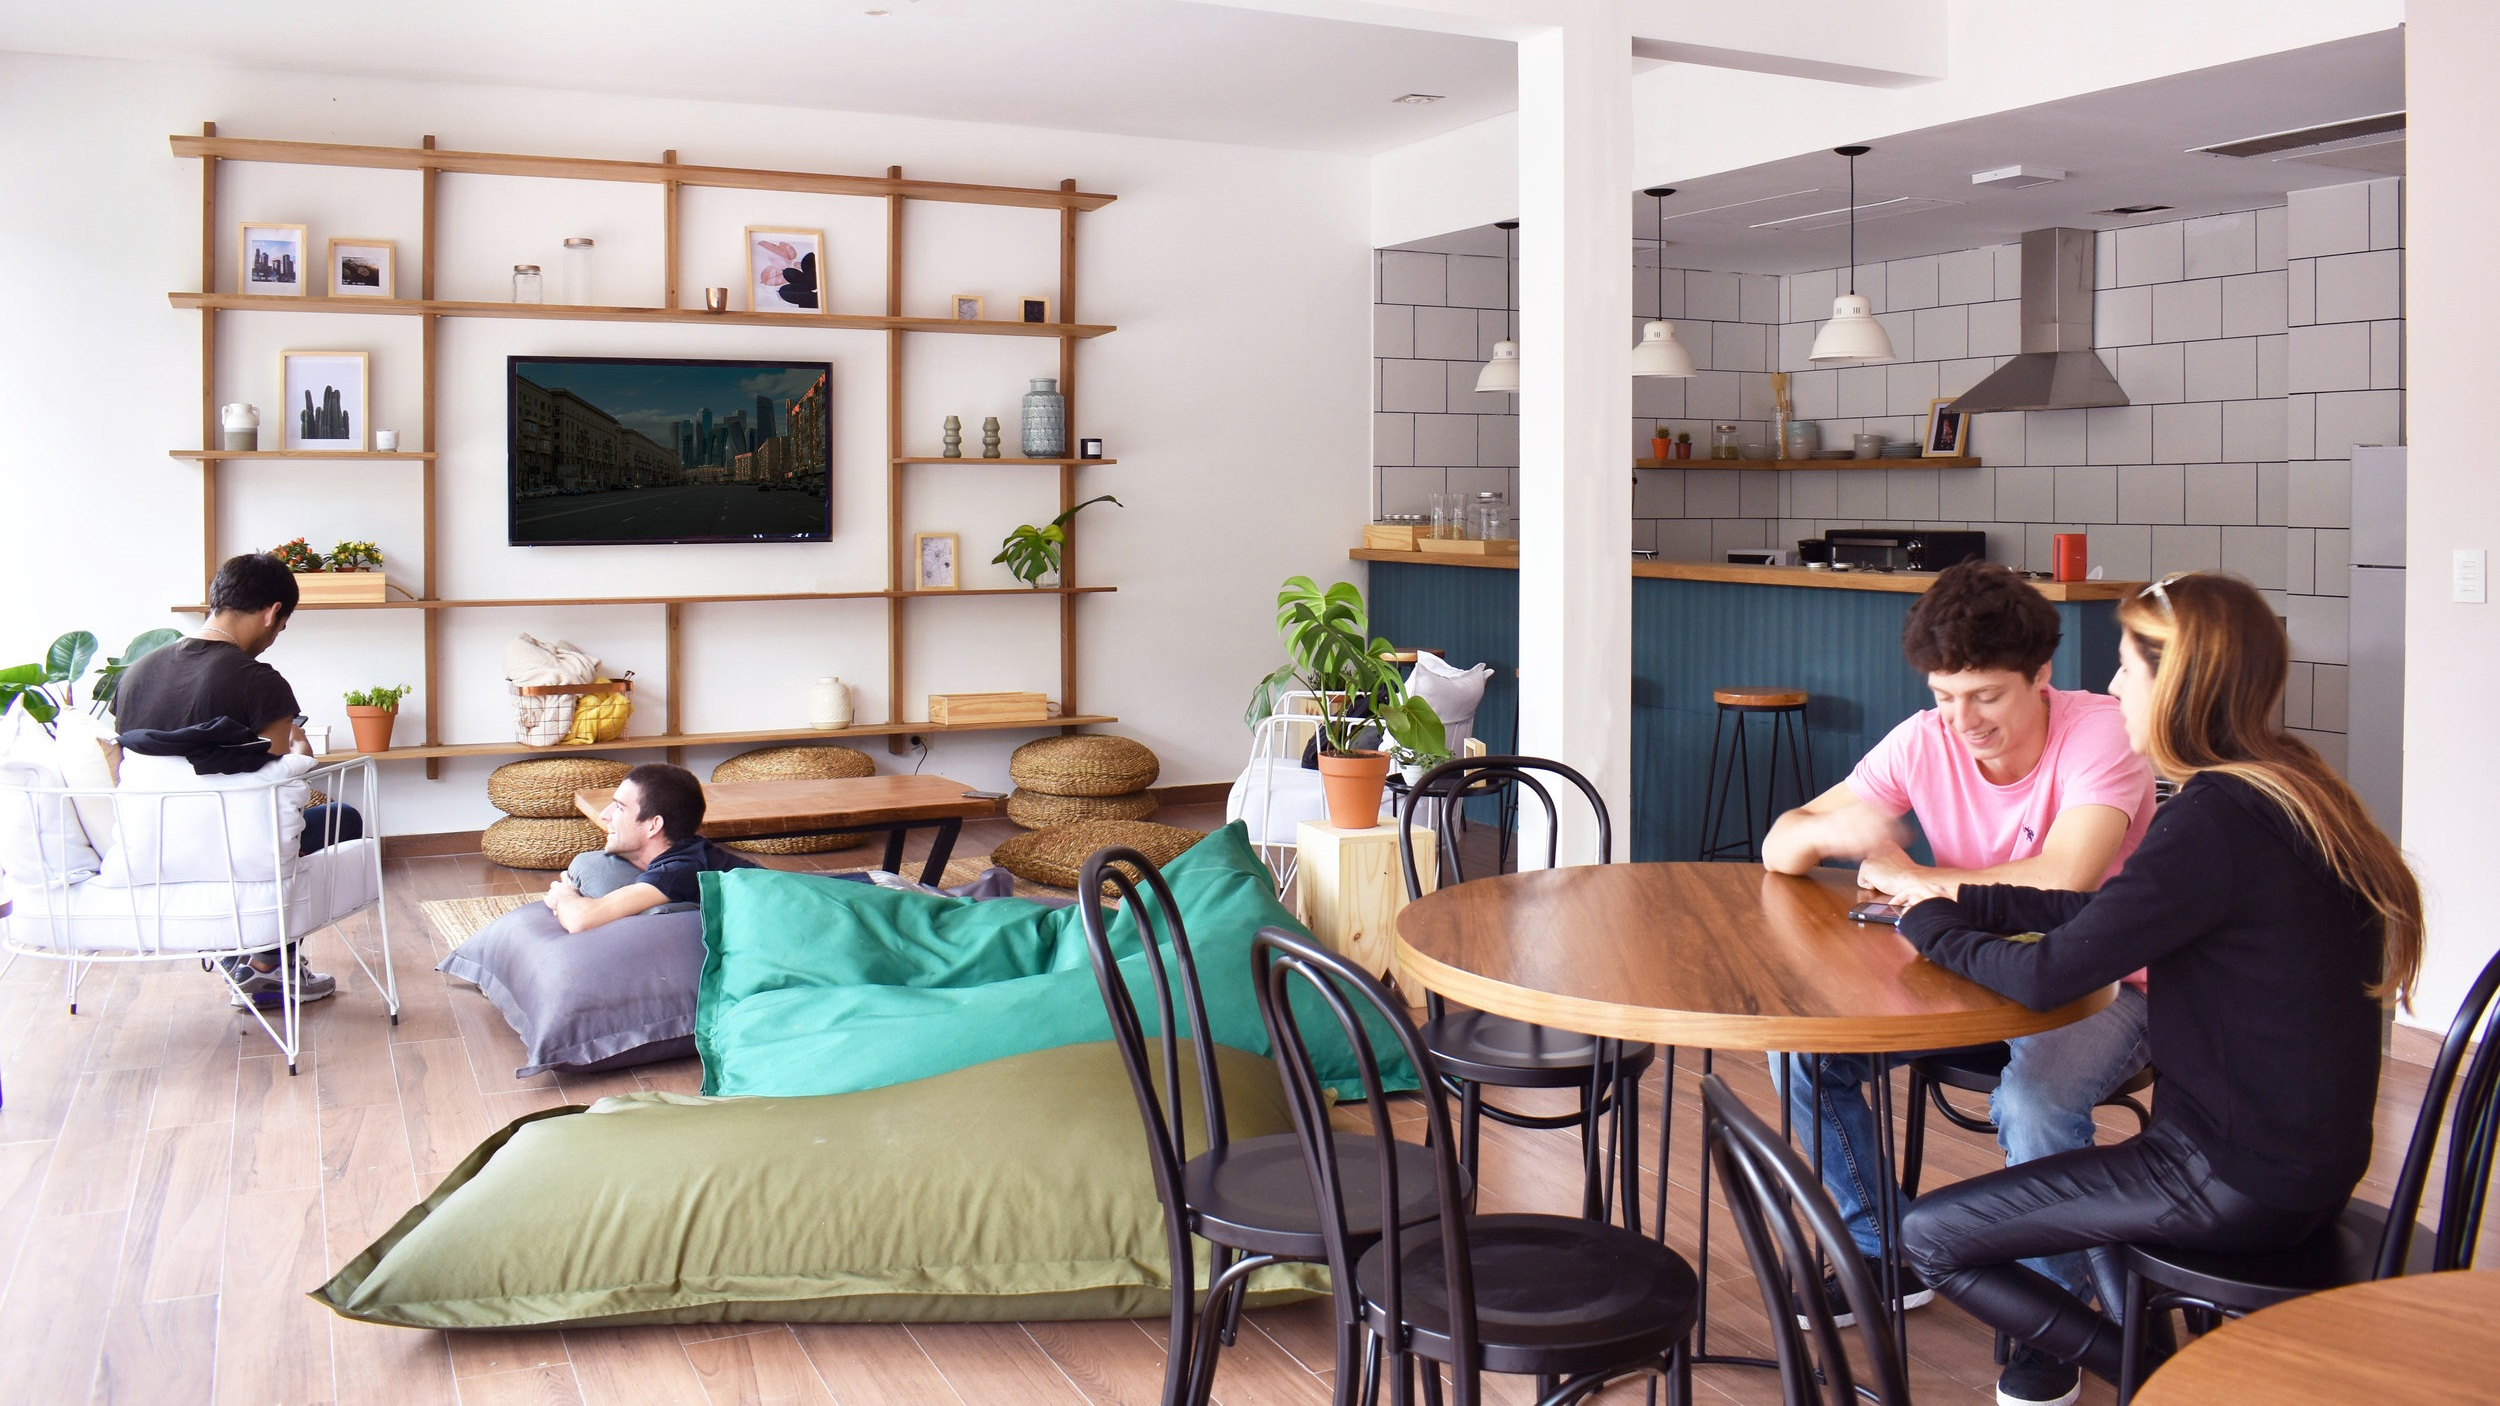 Our Casas - We design buildings with private apartments and coliving areas, so that everyone who lives in Casa Campus is part of our community.